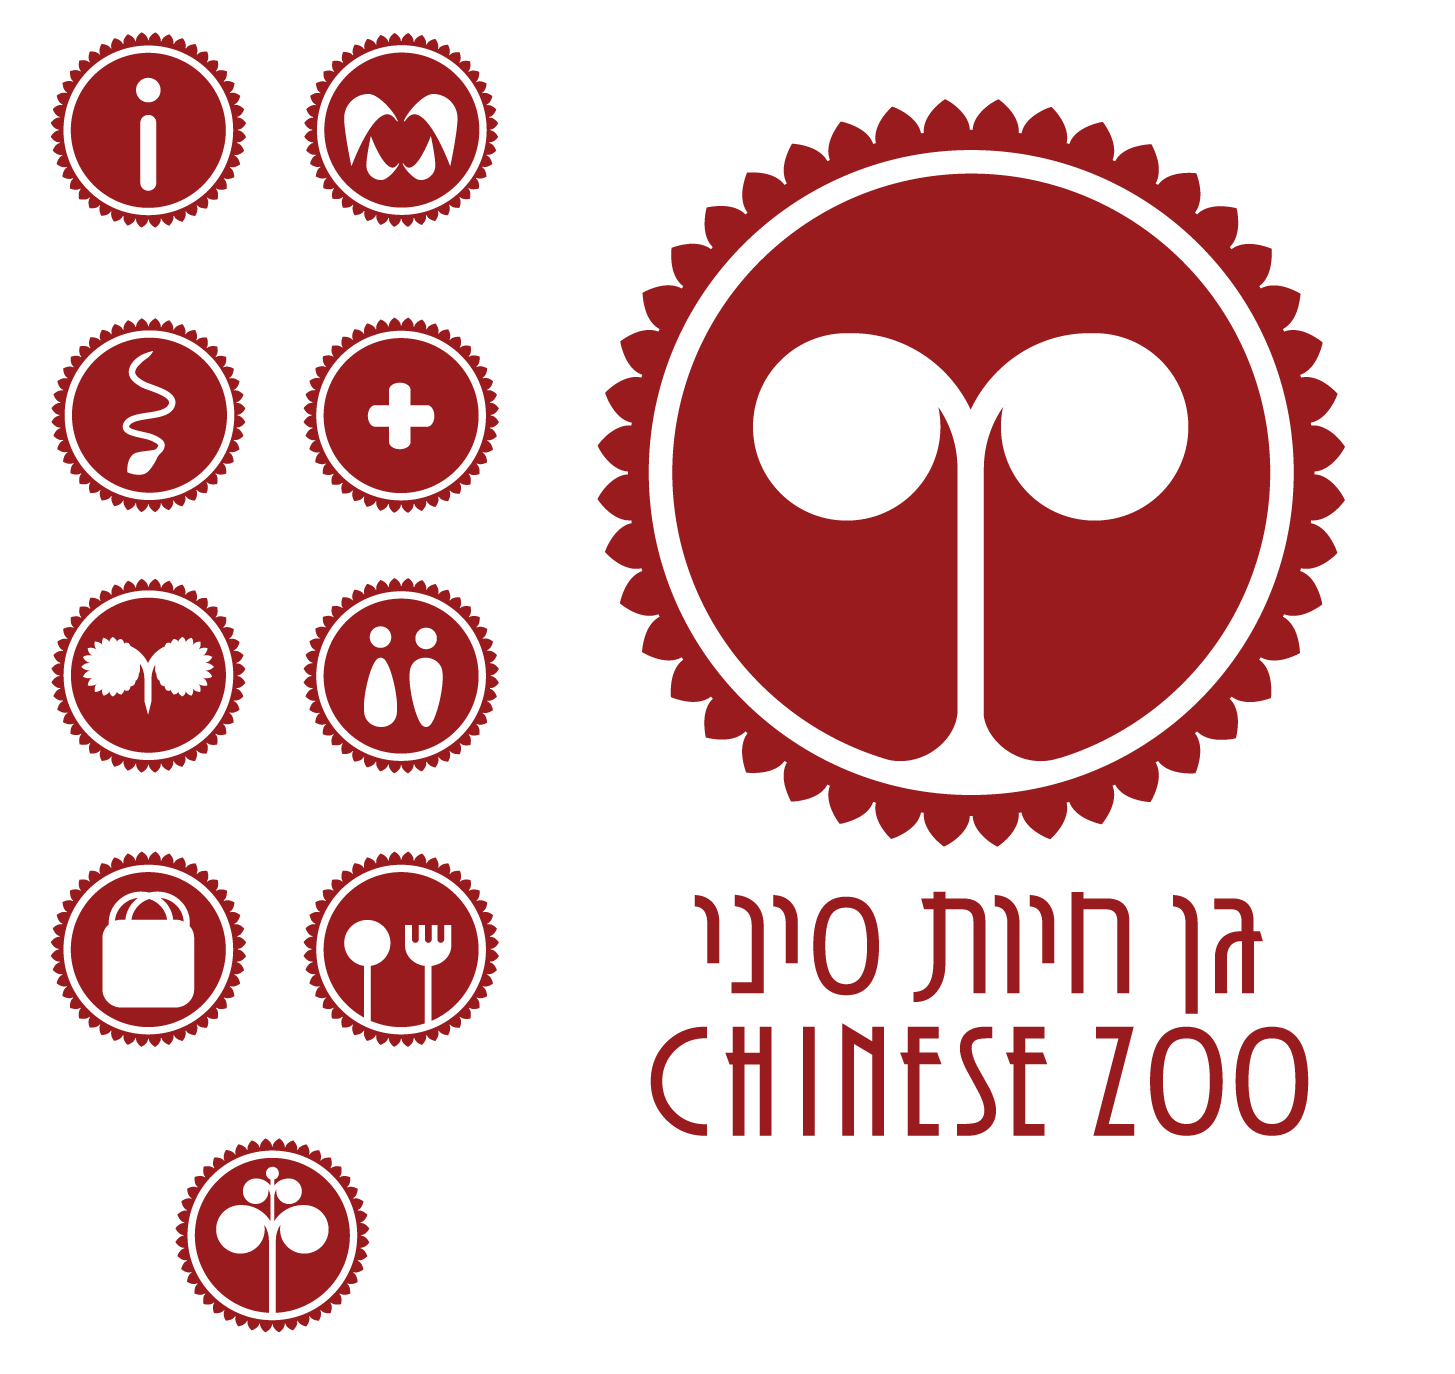 logos for Japanese zoo